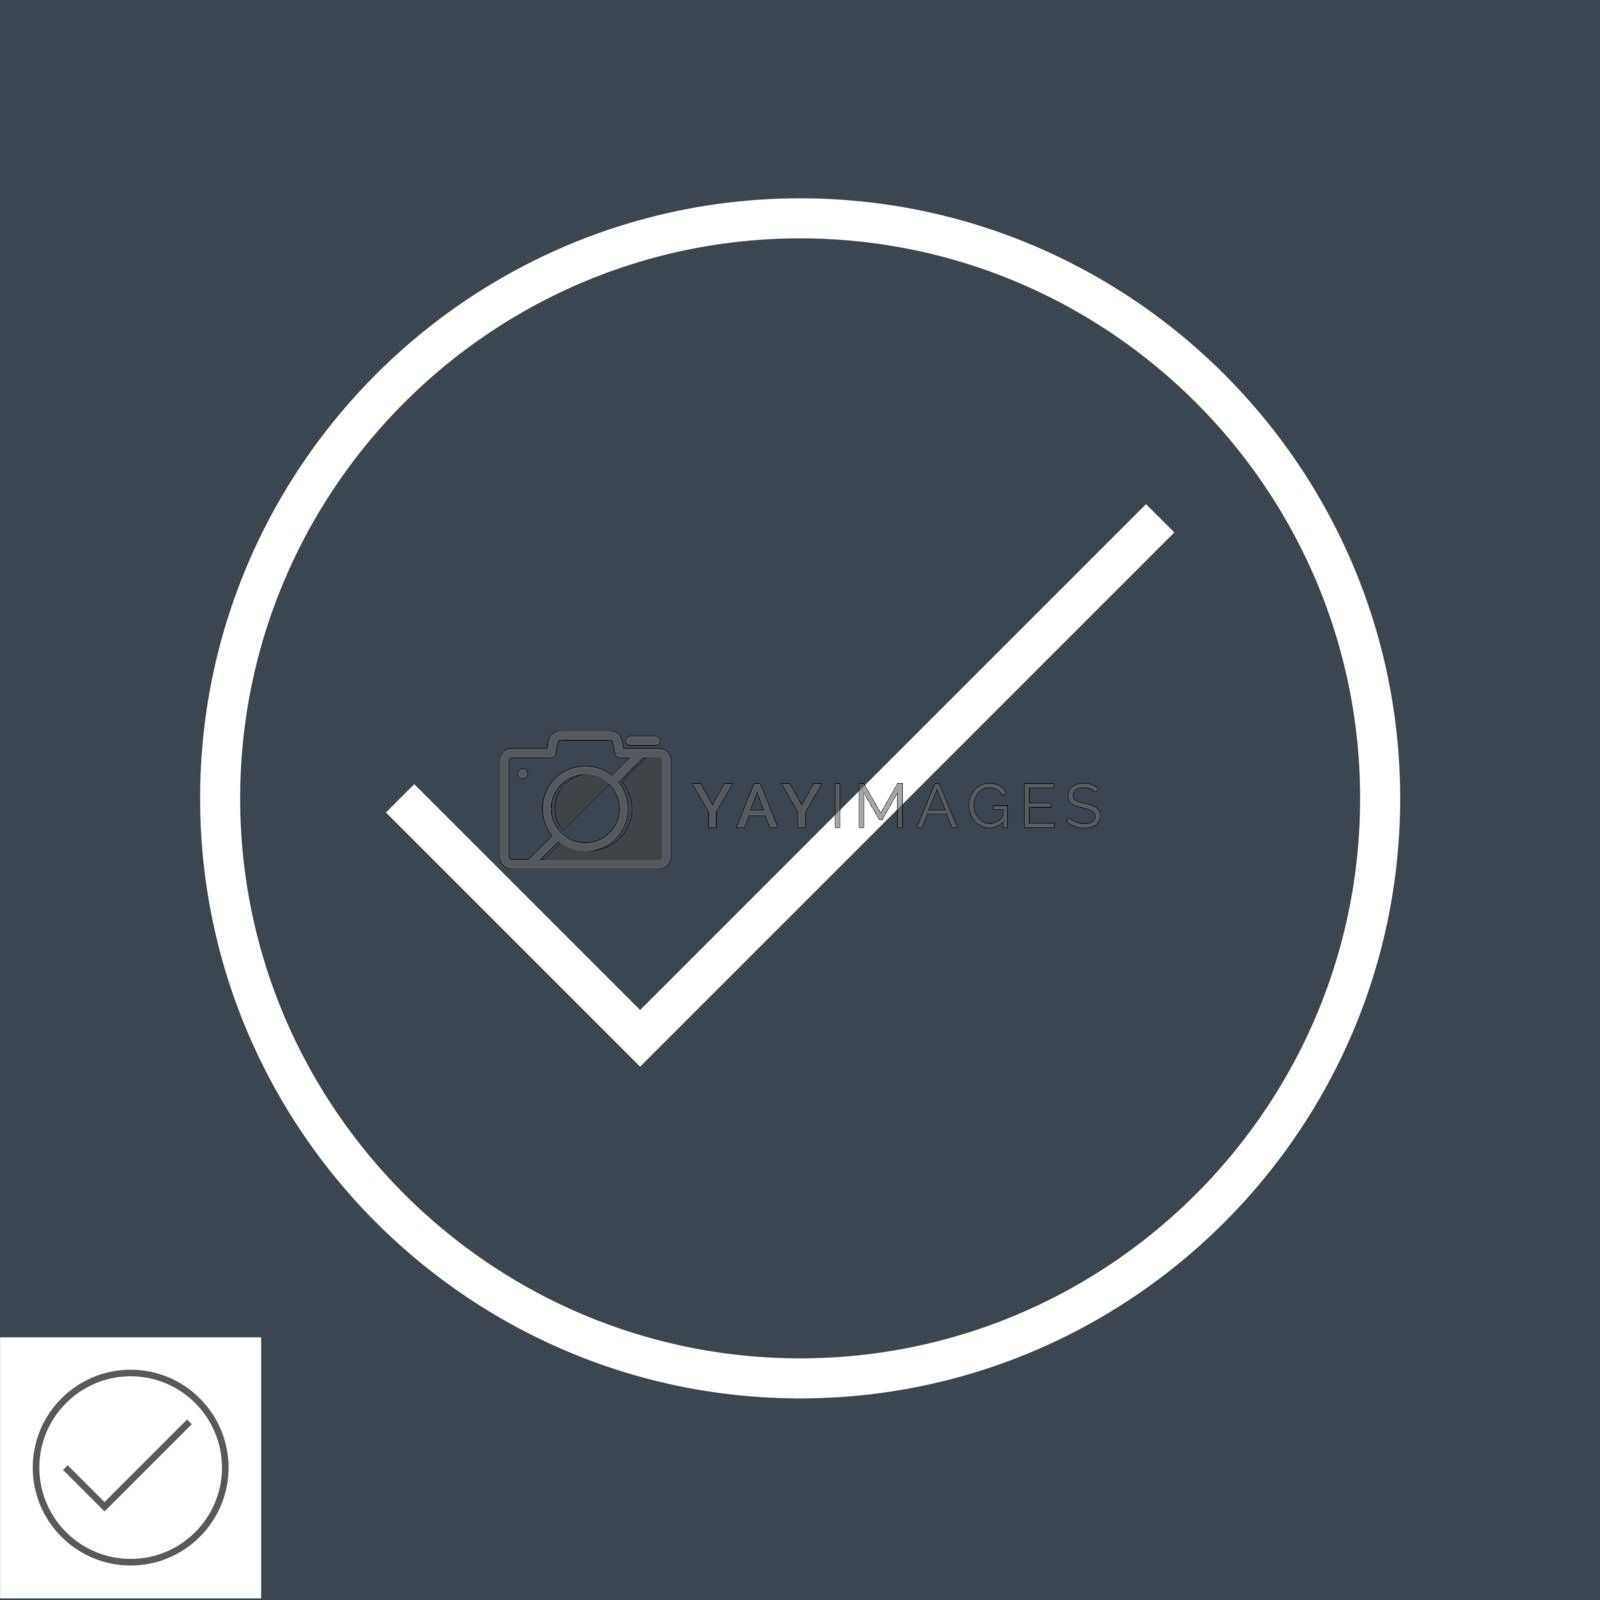 Check Mark Thin Line Vector Icon. Flat icon isolated on the black background. Editable EPS file. Vector illustration.